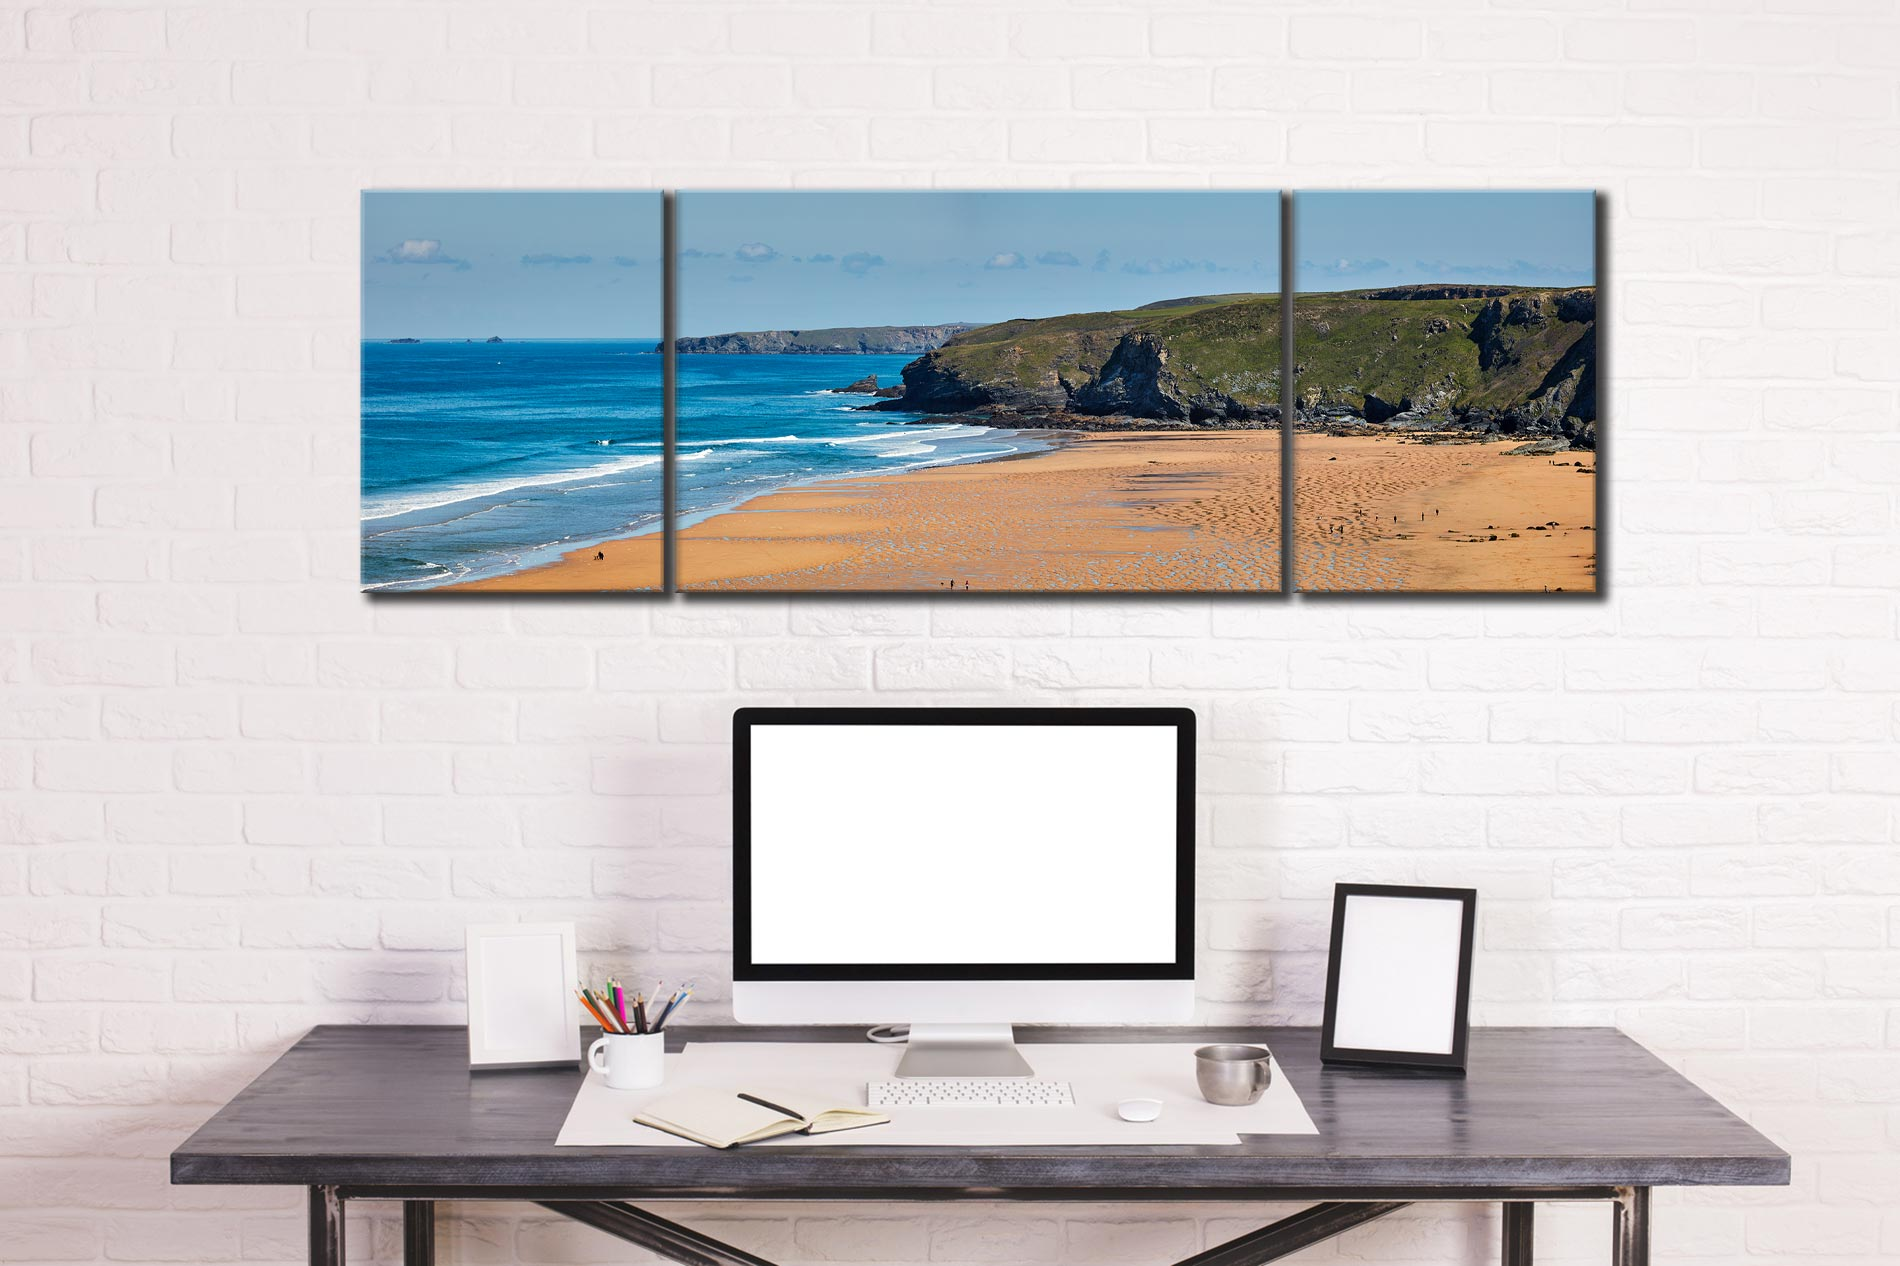 Watergate Bay Panorama - 3 Panel Wide Mid Canvas on Wall